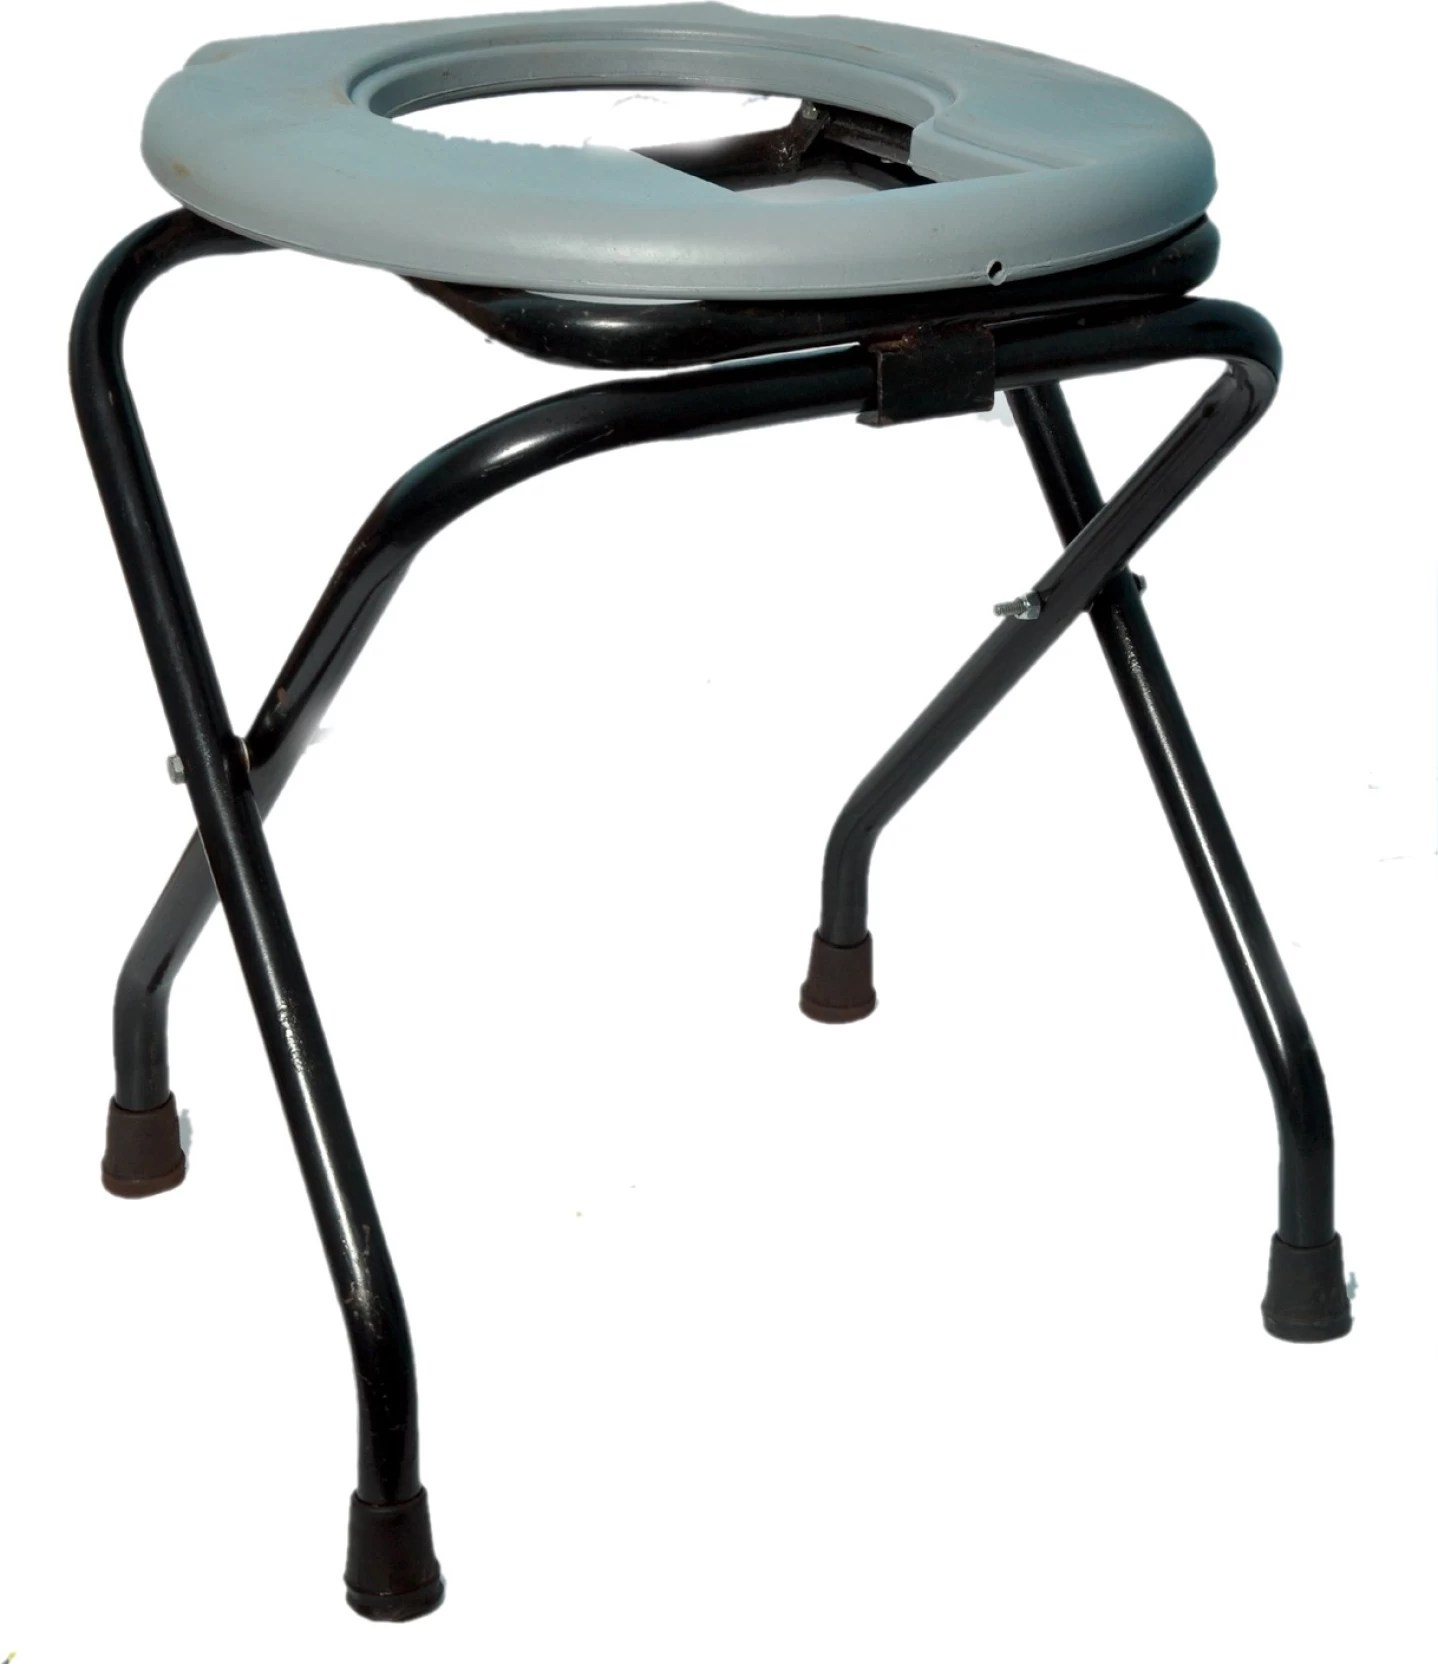 folding chair flipkart plastic chairs kmart life line services delux commode price in india